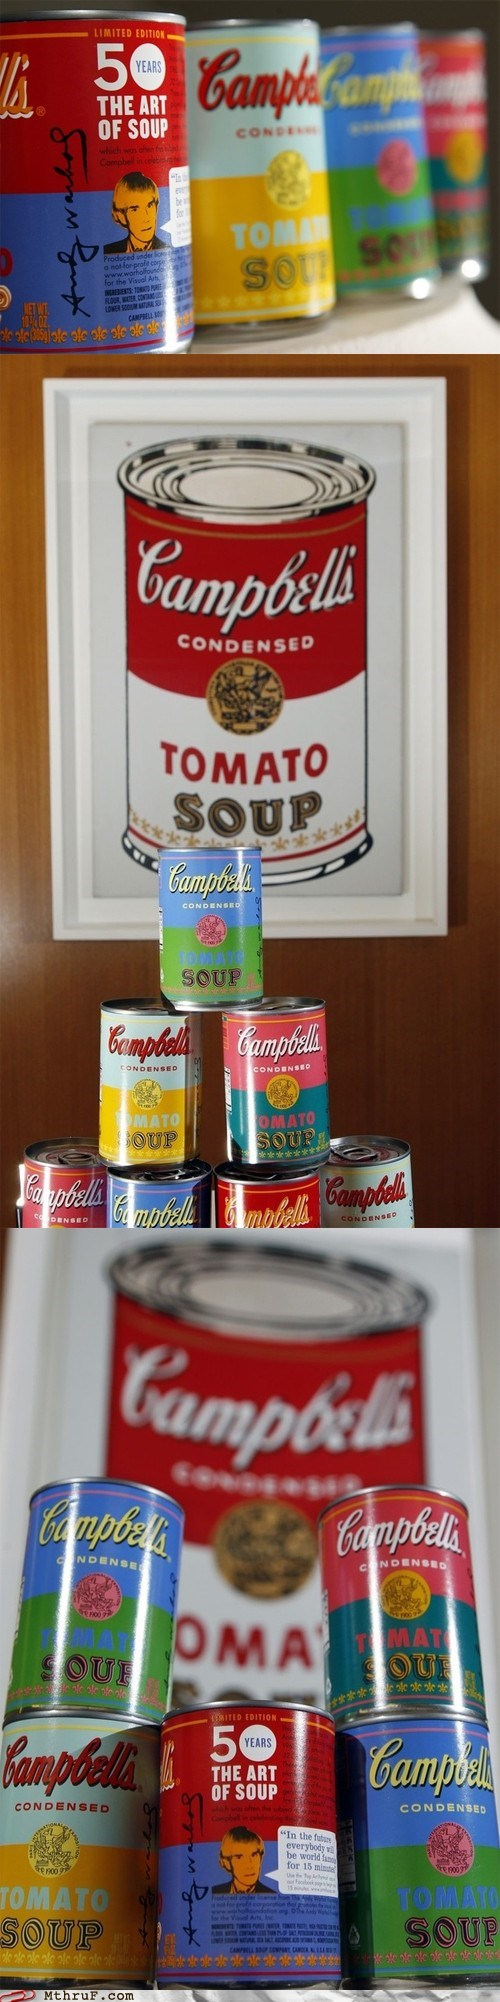 Andy Warhol,campbells,soup cans,Target,tomato soup